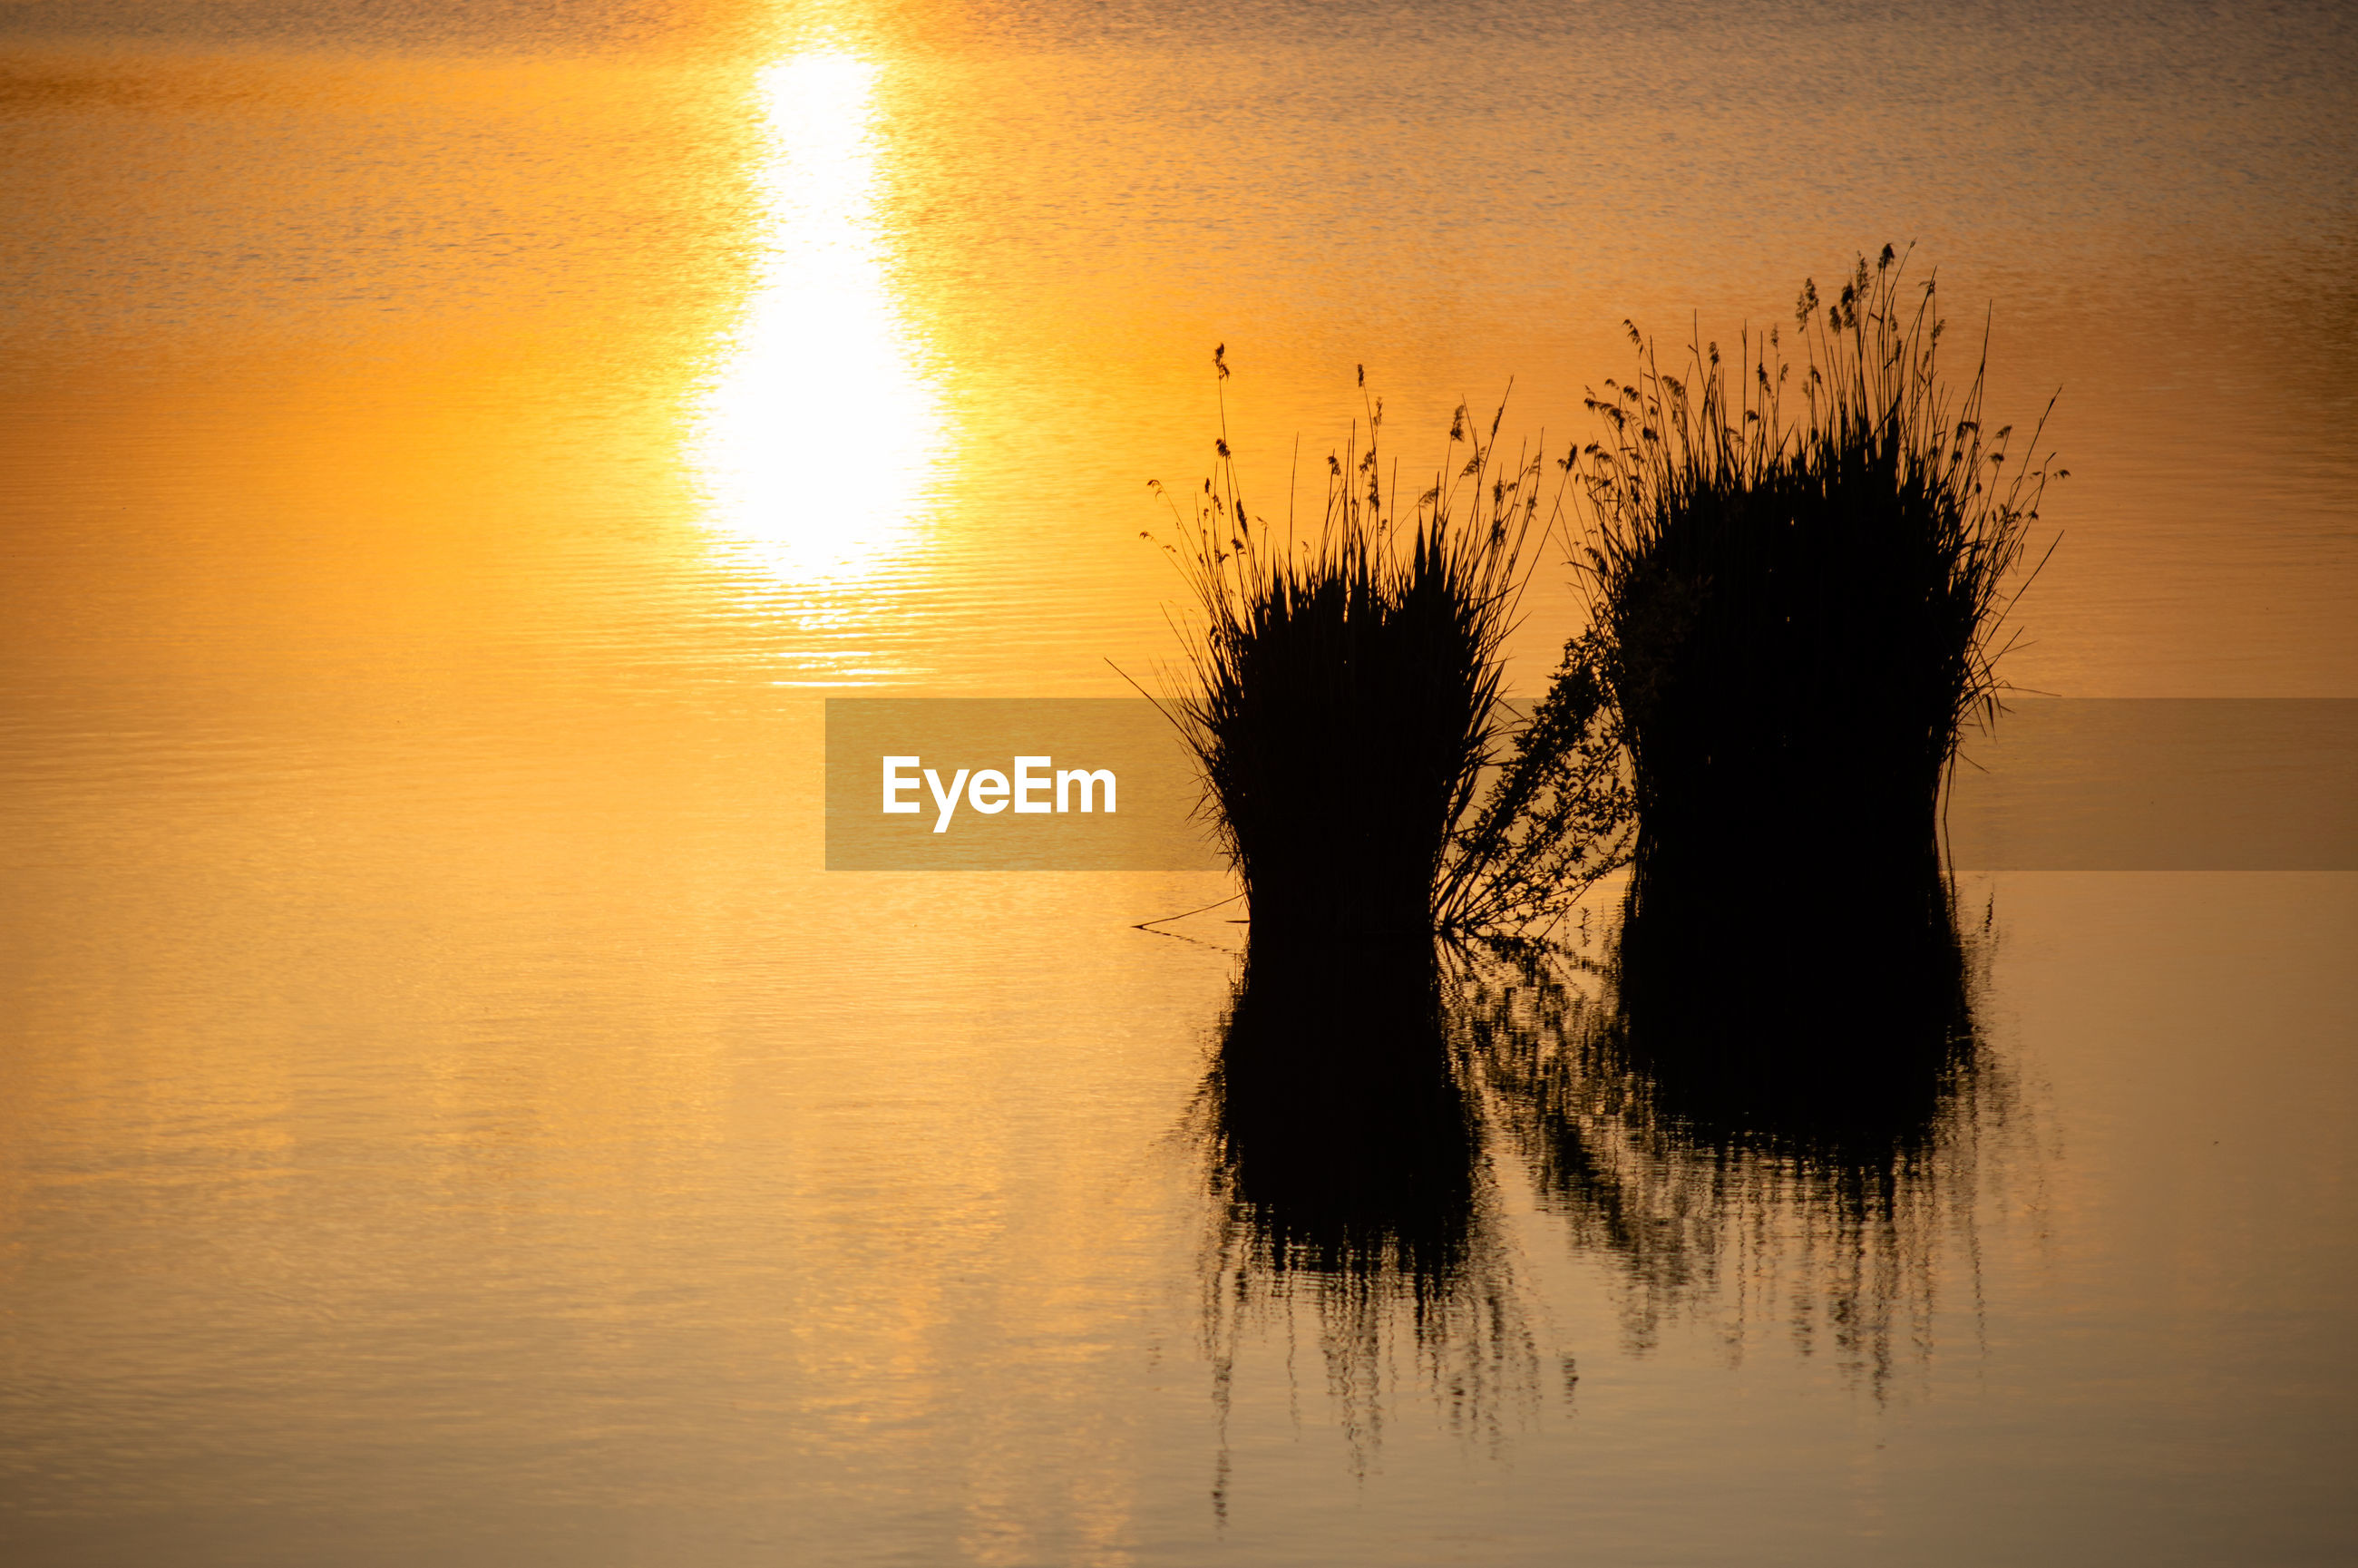 Silhouette plants in lake during sunset